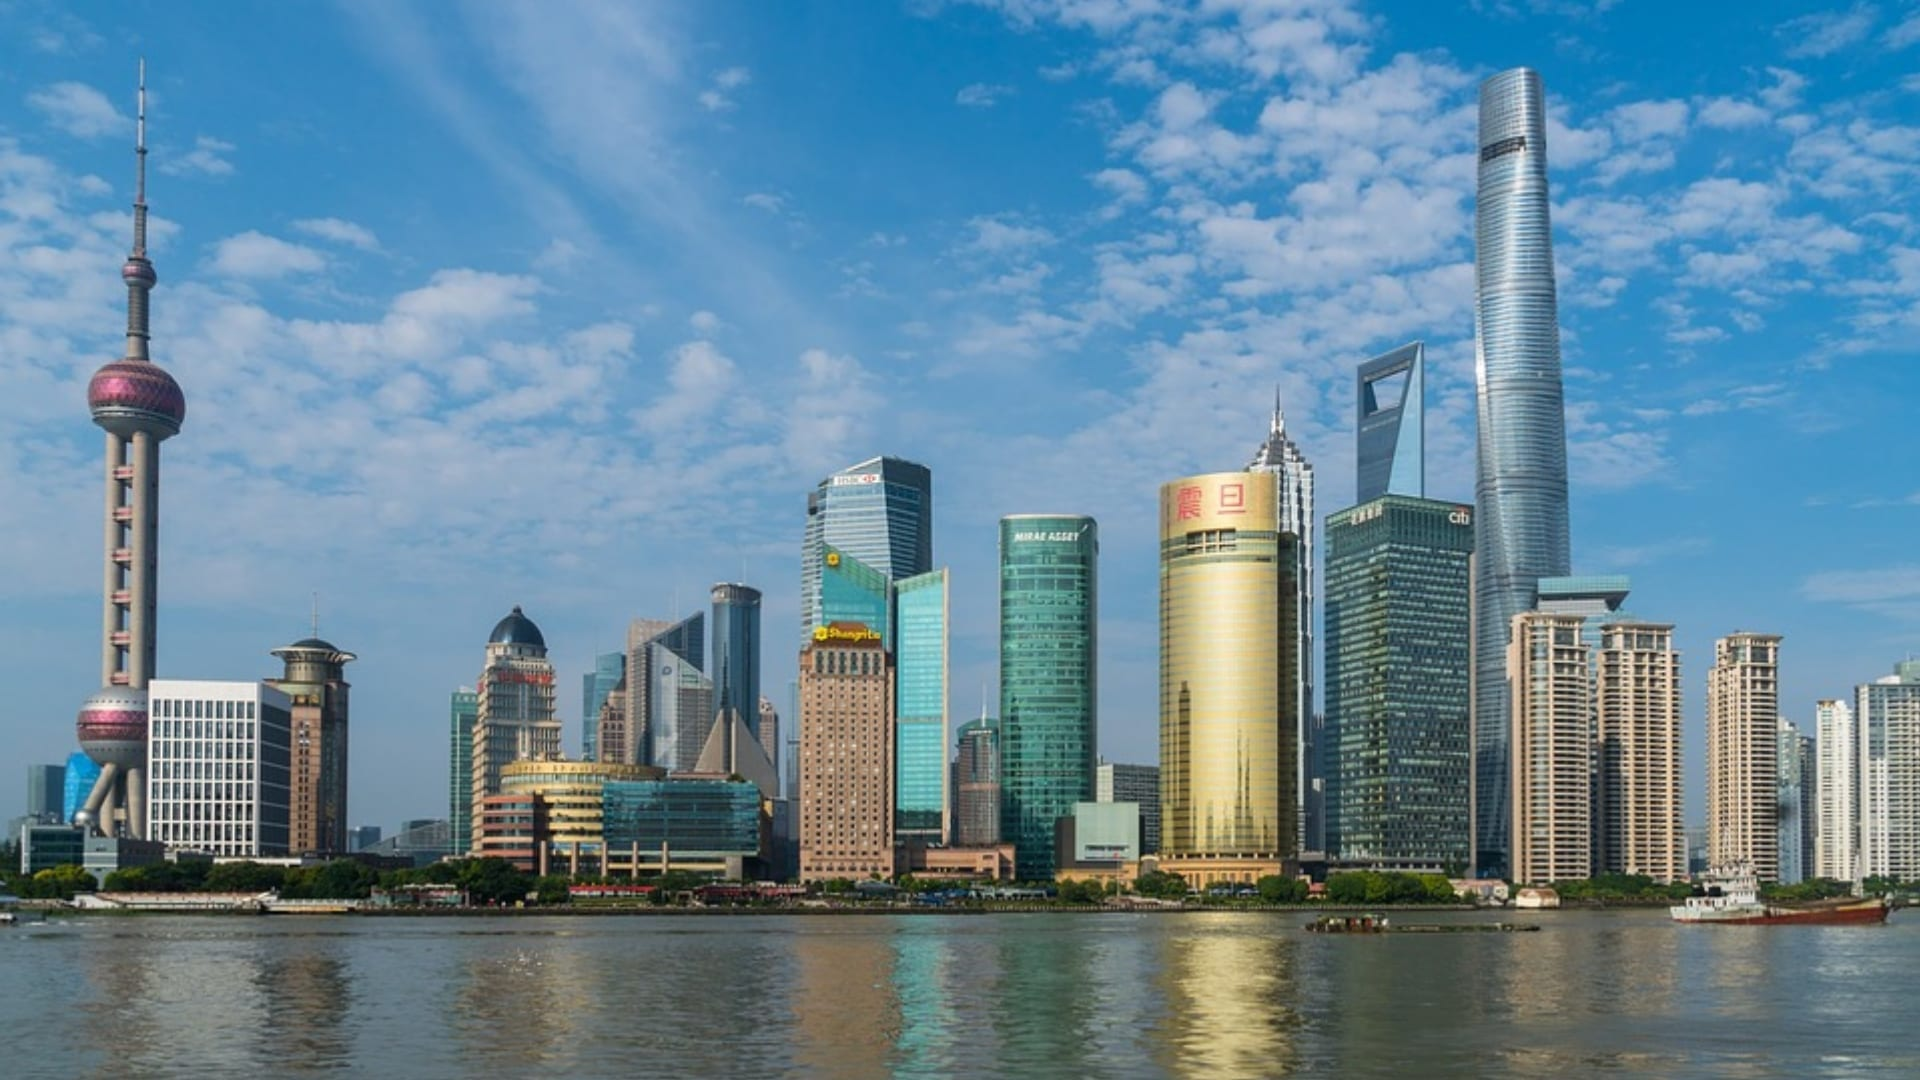 High buildings on the water side and a blue sky in Shanghai.